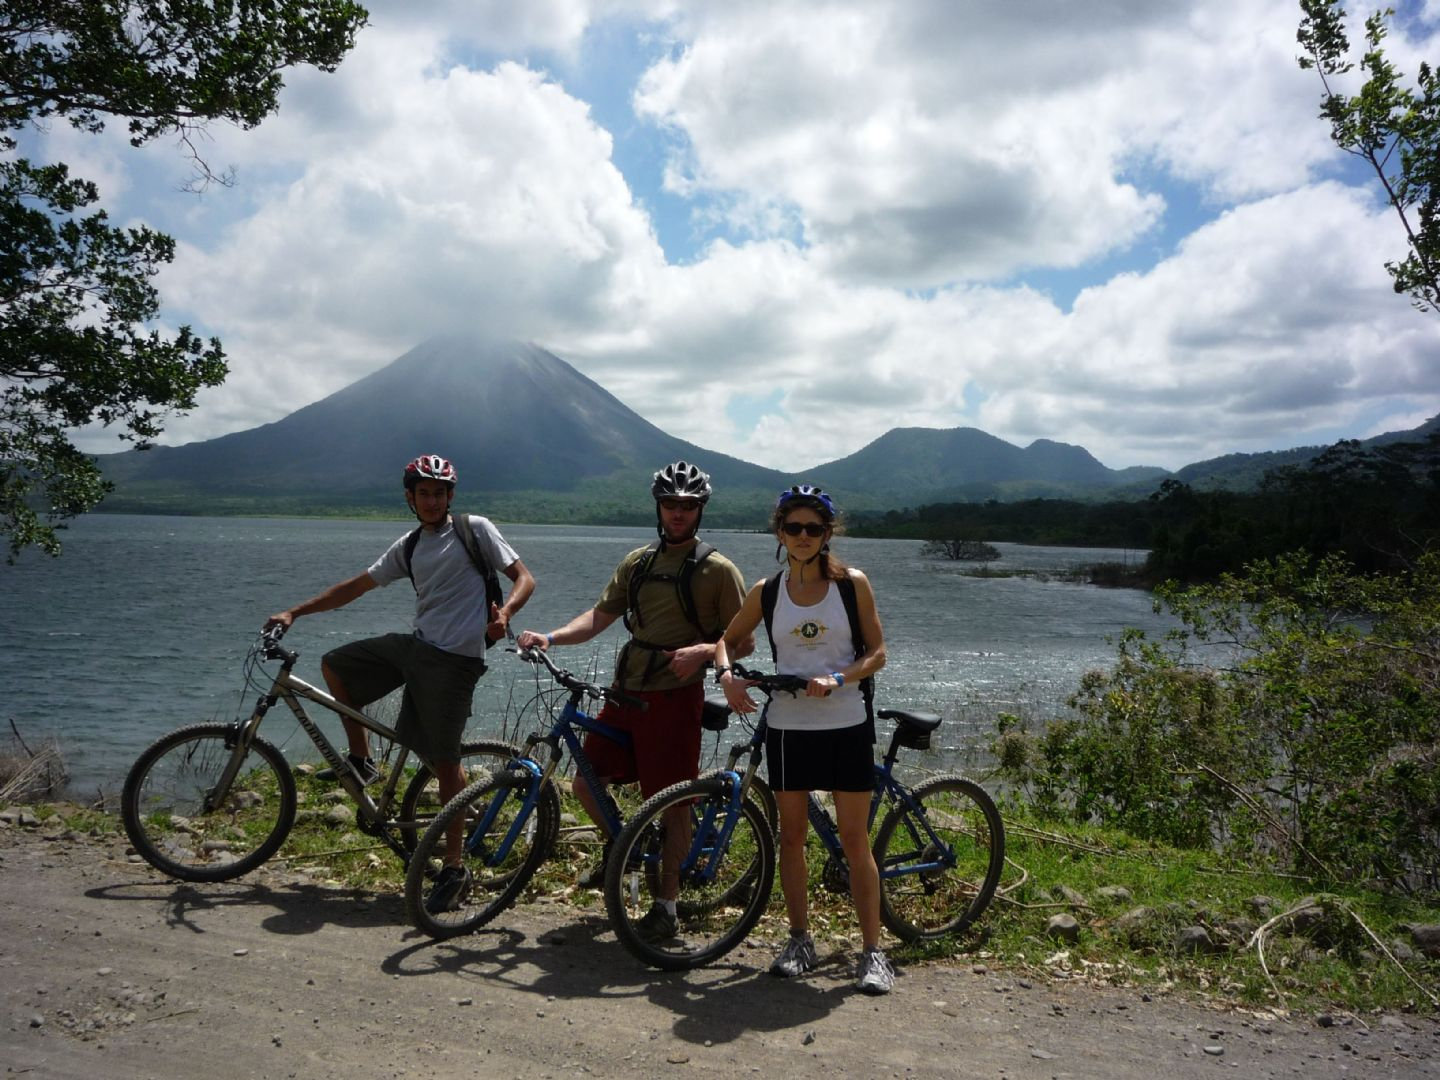 Biking20Arenal.jpg - Costa Rica - Volcanes y Playas - Cycling Adventures